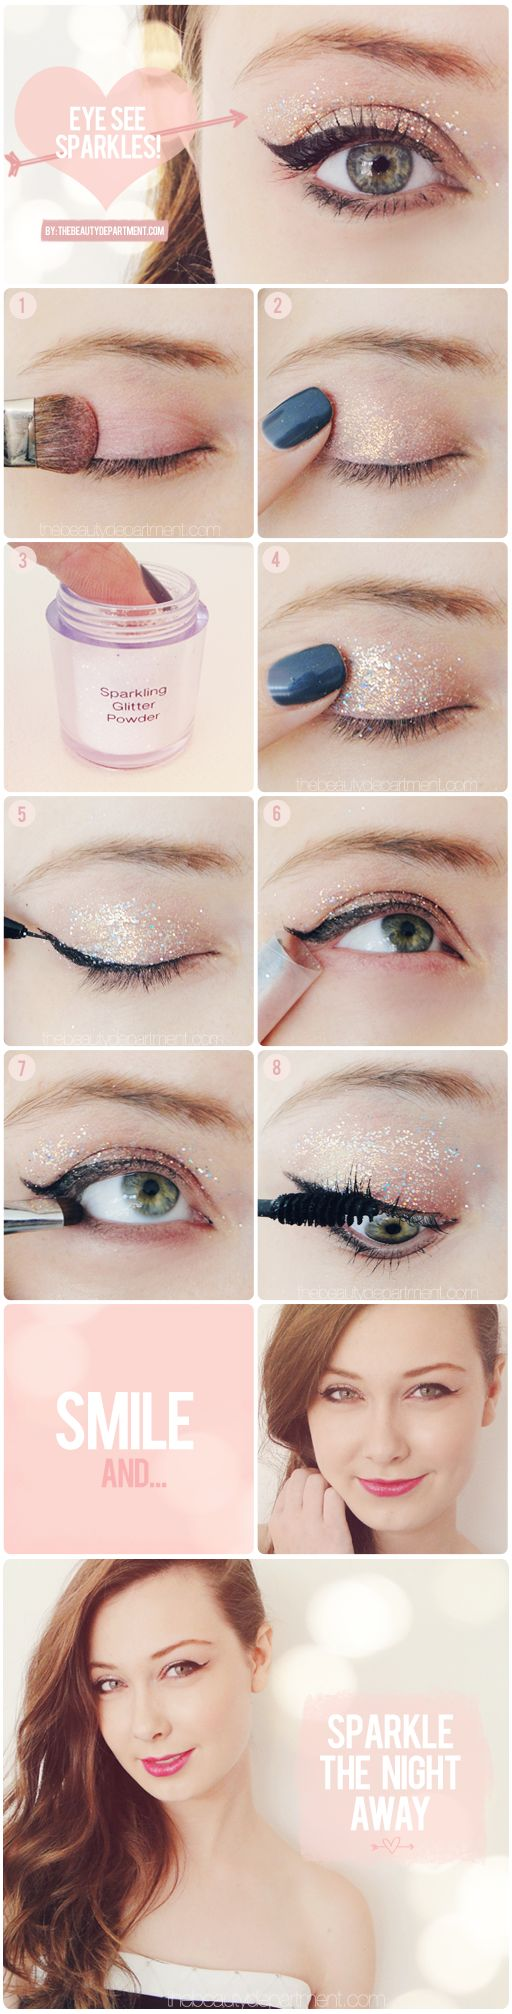 Rather than going with a dark smokey eye for the upcoming holidays or special events, the #Beauty Department shows you how to pair a light eyeshadow with some glitter to give your eyes some sparkle. Beverly K.